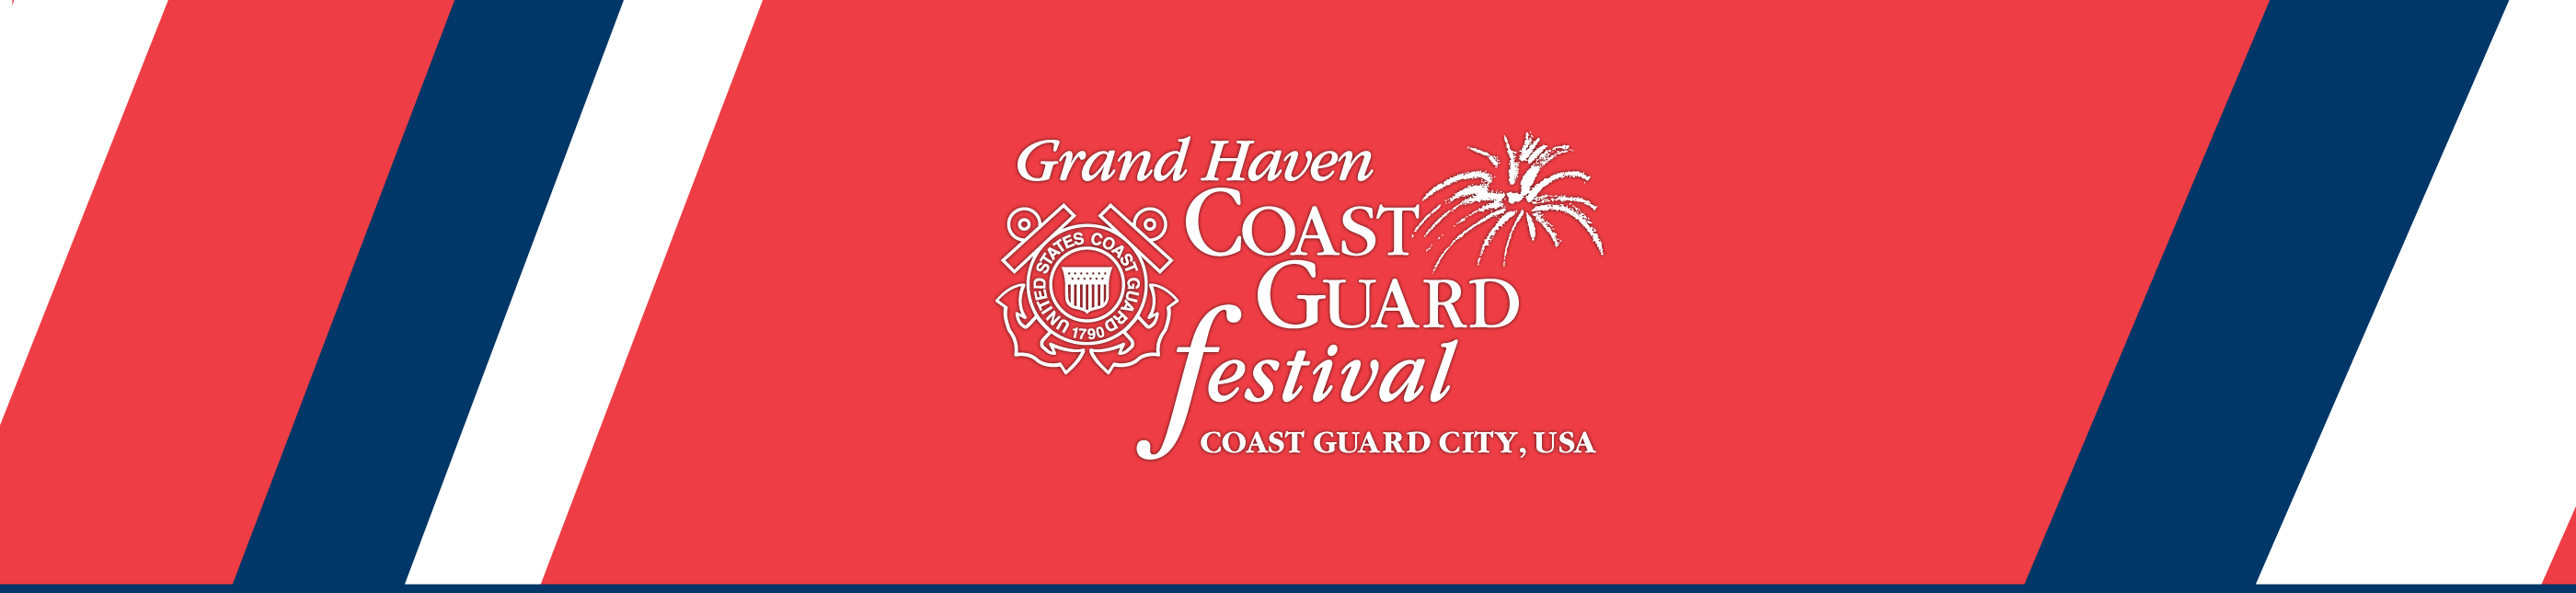 2019 Grand Haven Coast Guard Festival